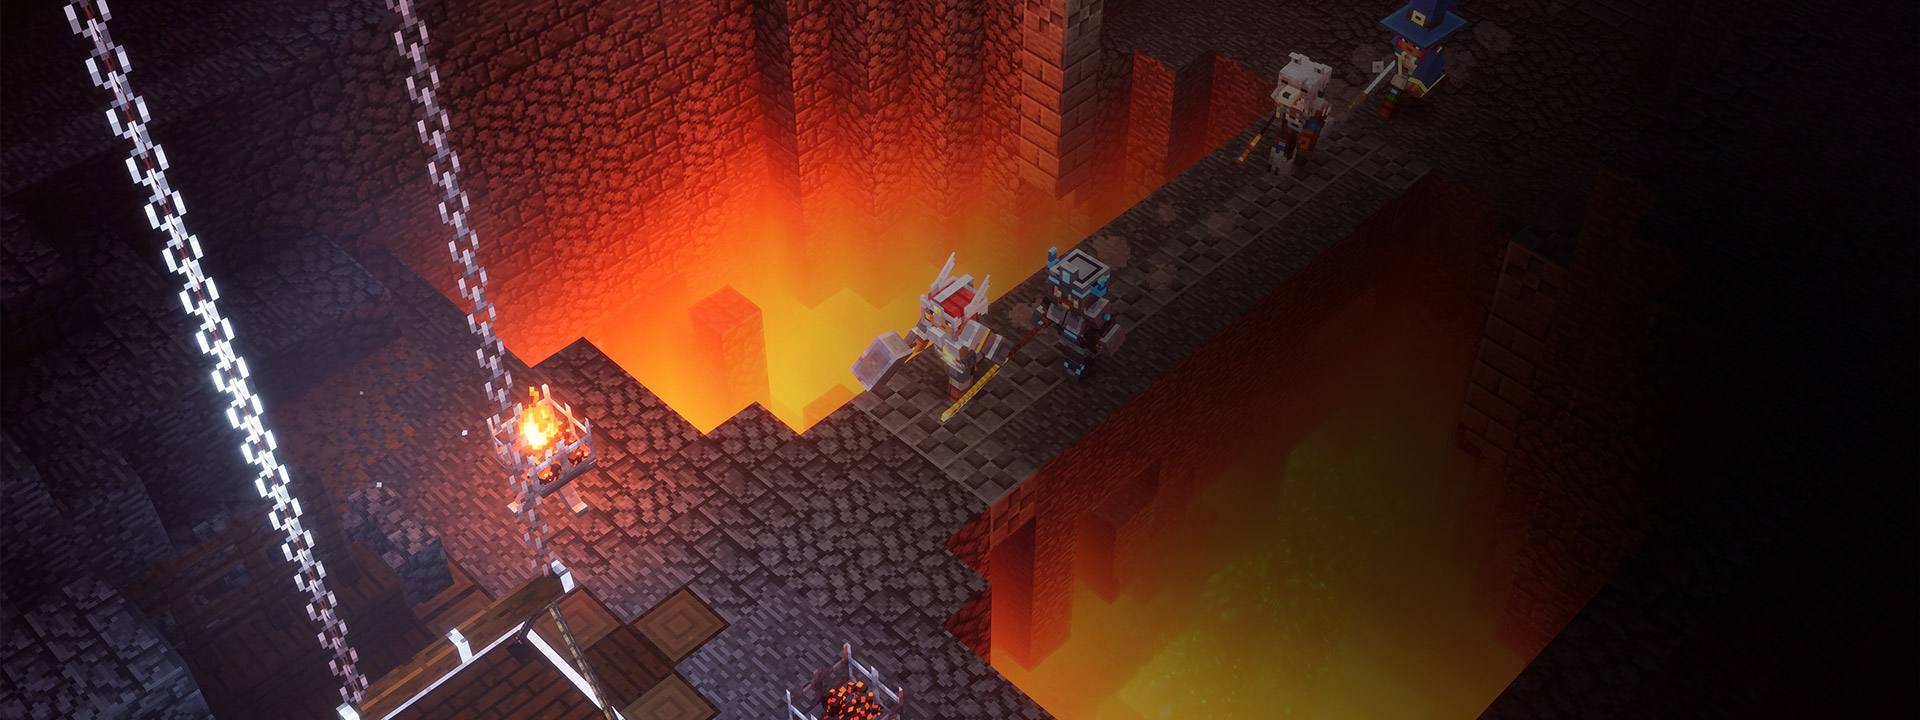 A group of characters crossing over lava deep in the dungeon.